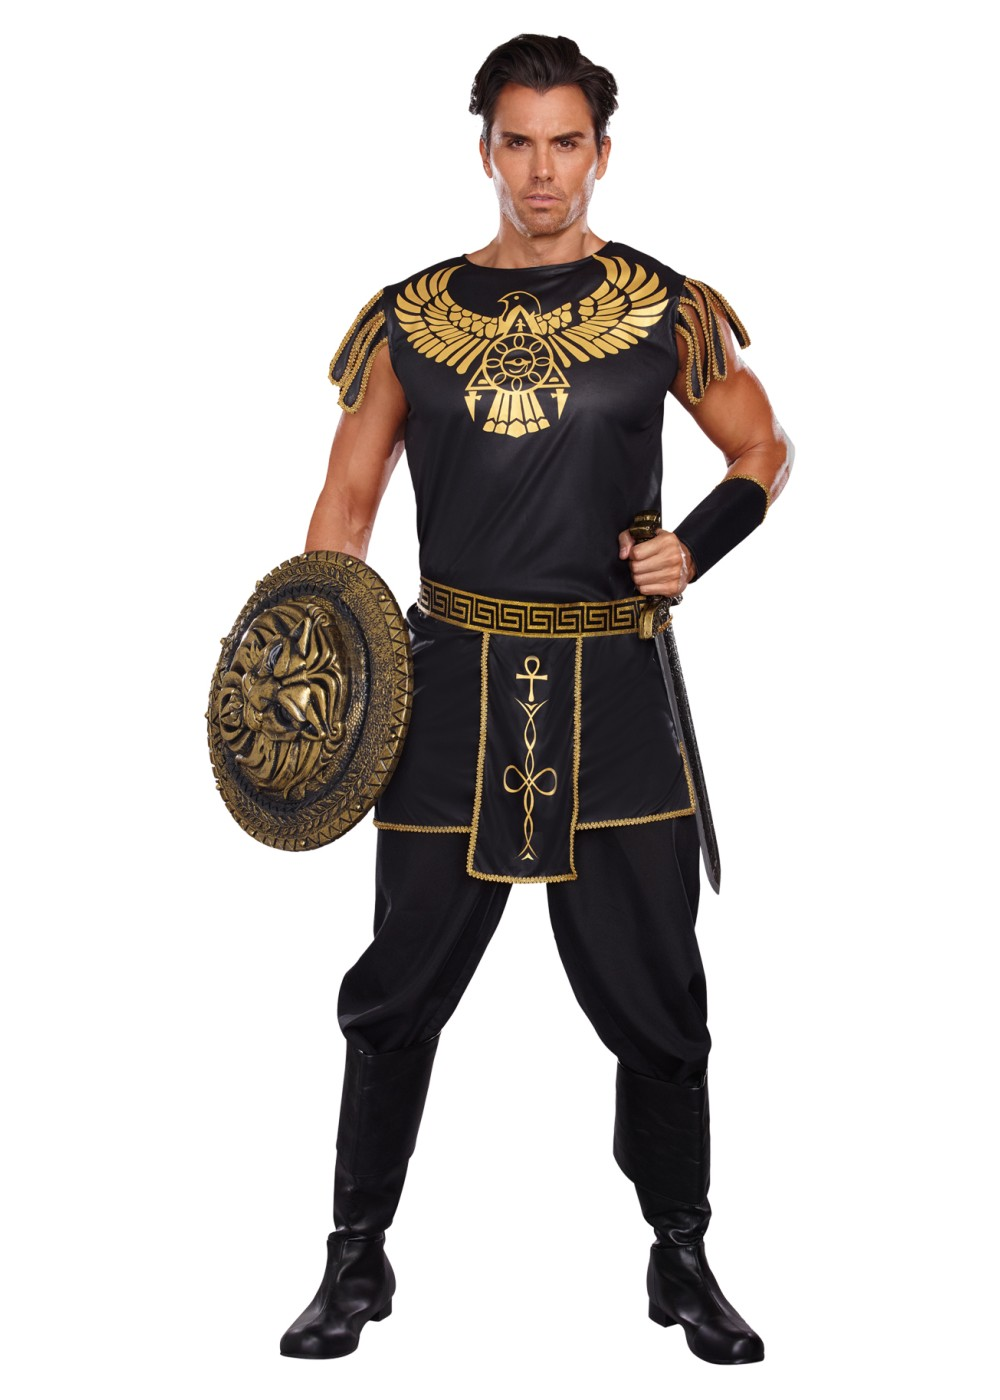 Egyptian Clothing. Egypt has hot and dry weather because so much of it is a desert. The ancient Egyptians had to have clothing that was not too hot and allowed free flowing air to cool their bodies.